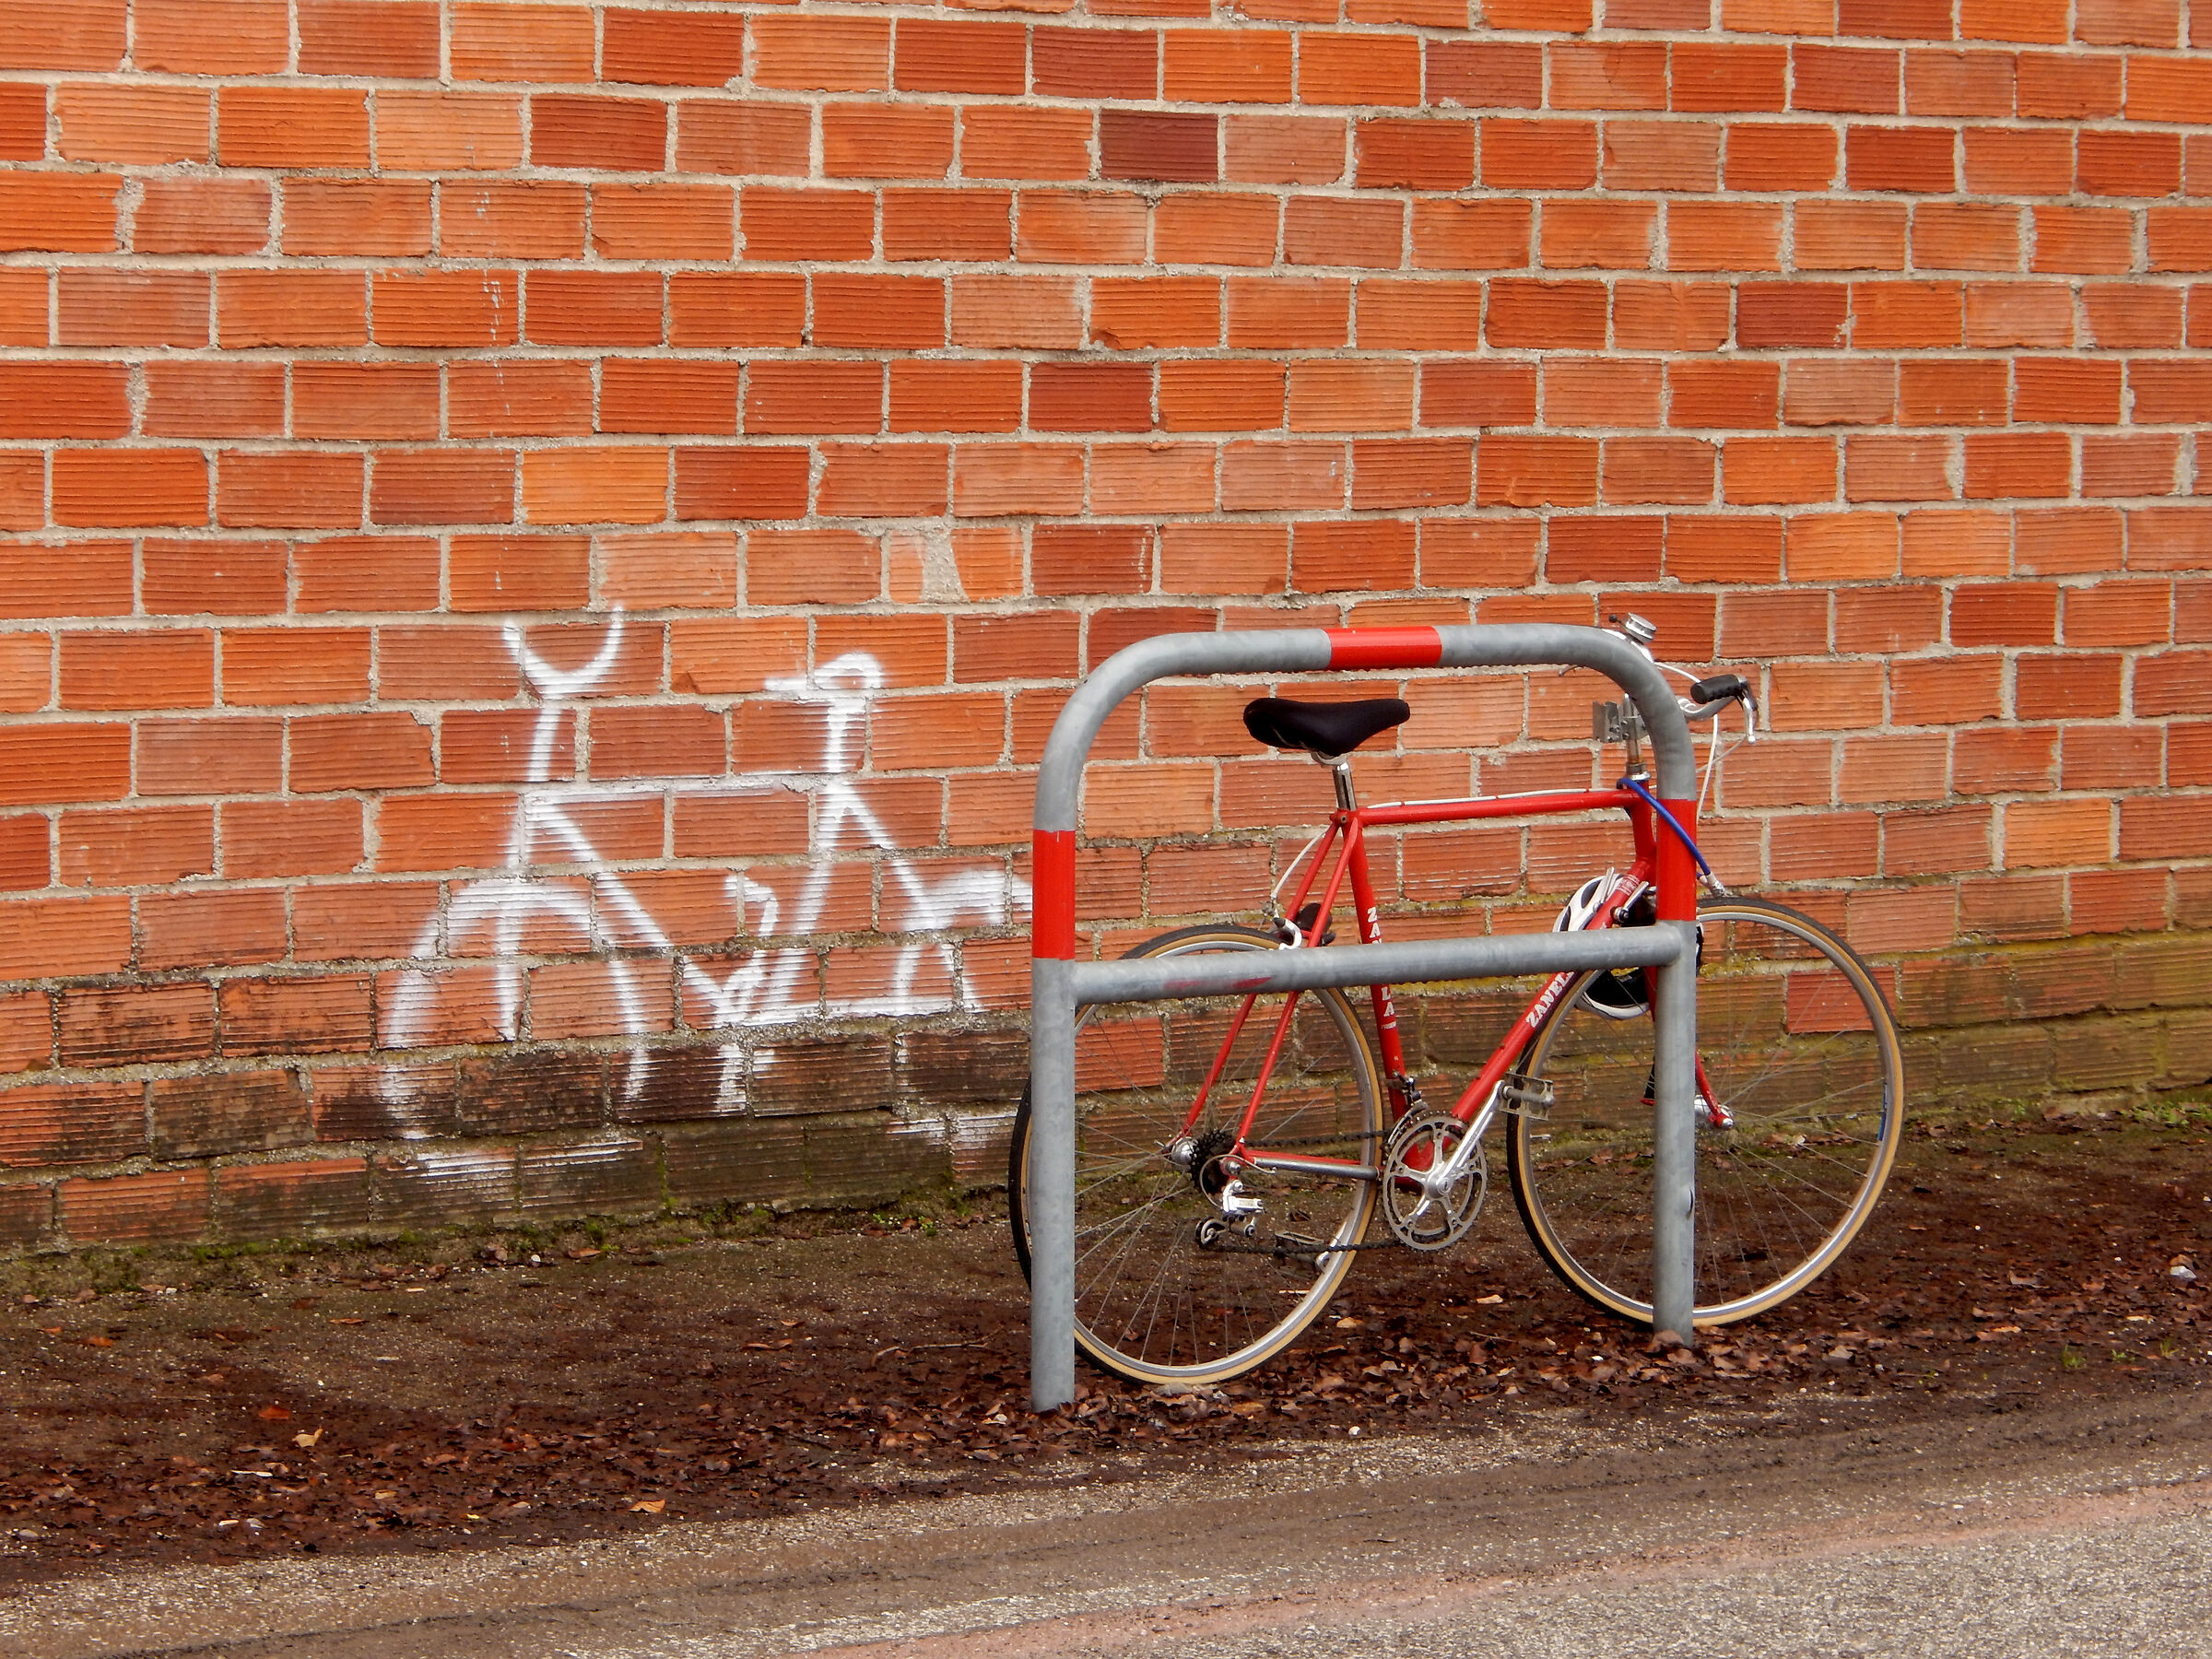 Reserved for bicycles...